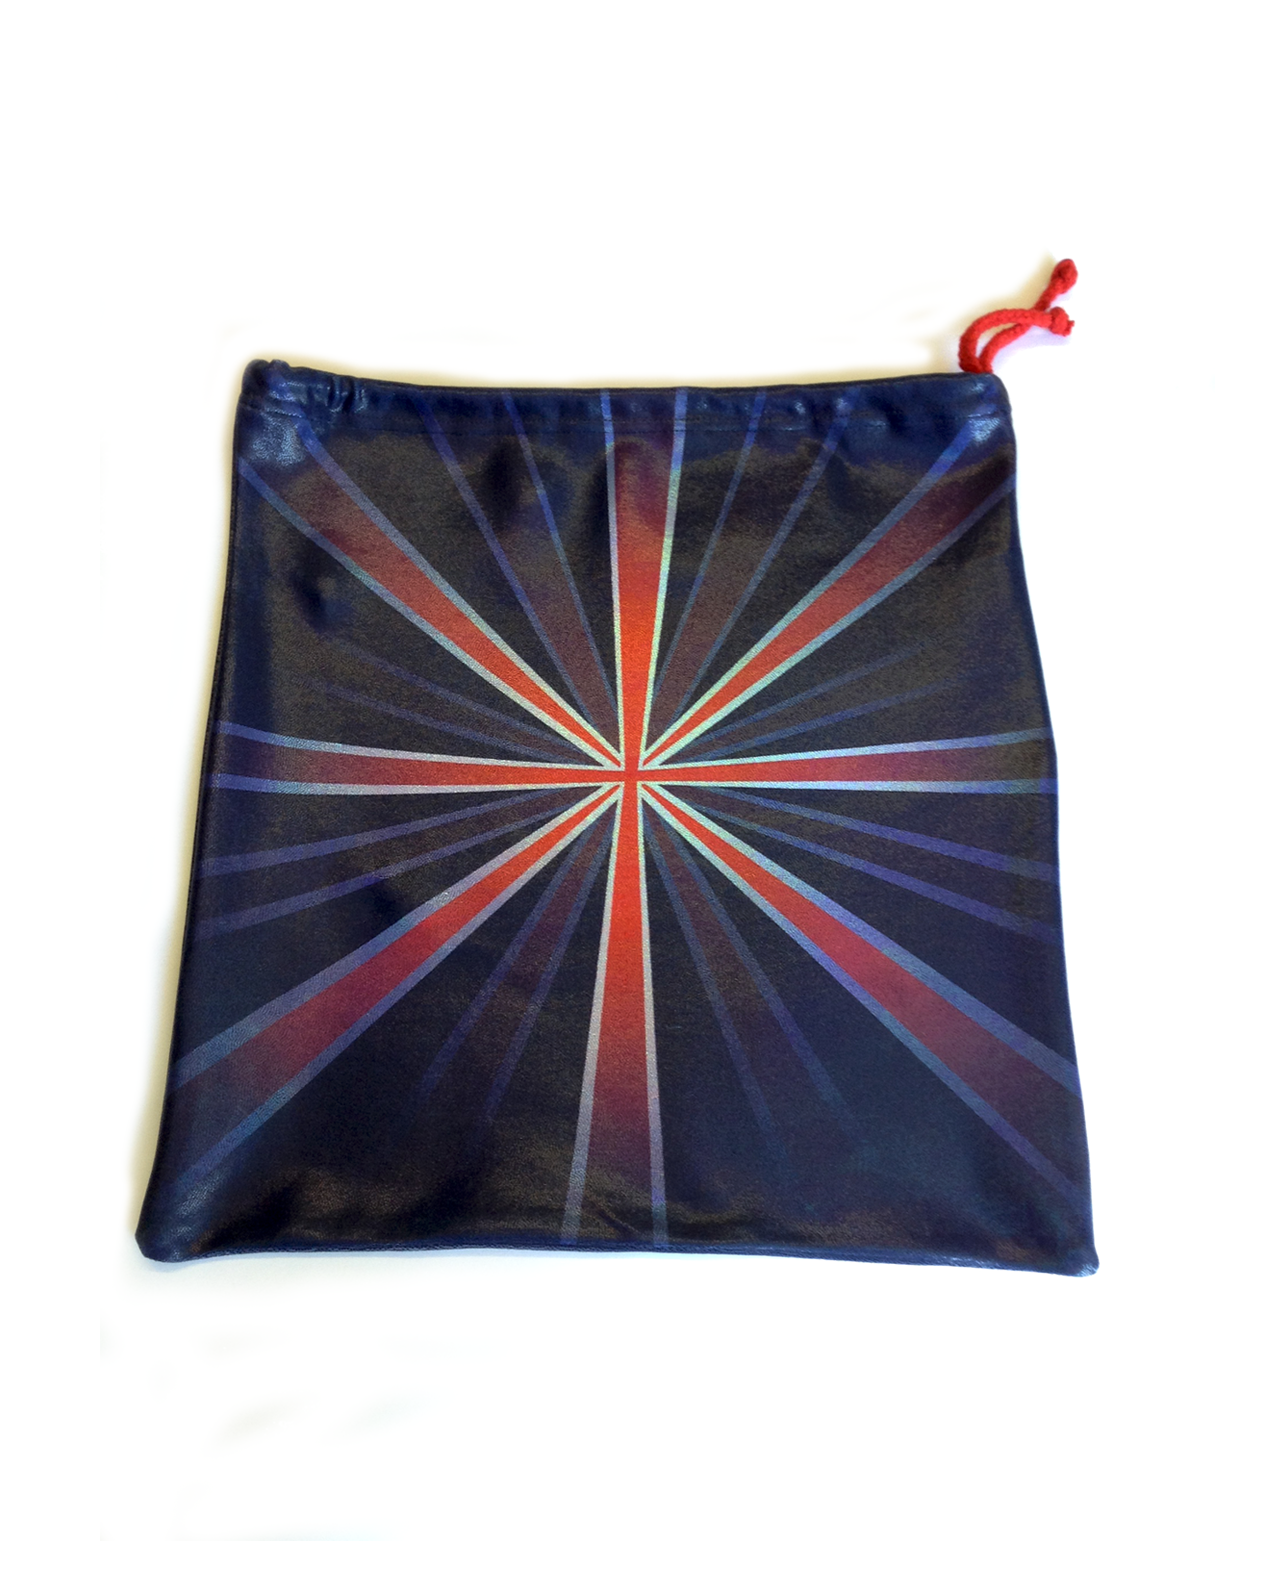 hand guard bag with union jack detail